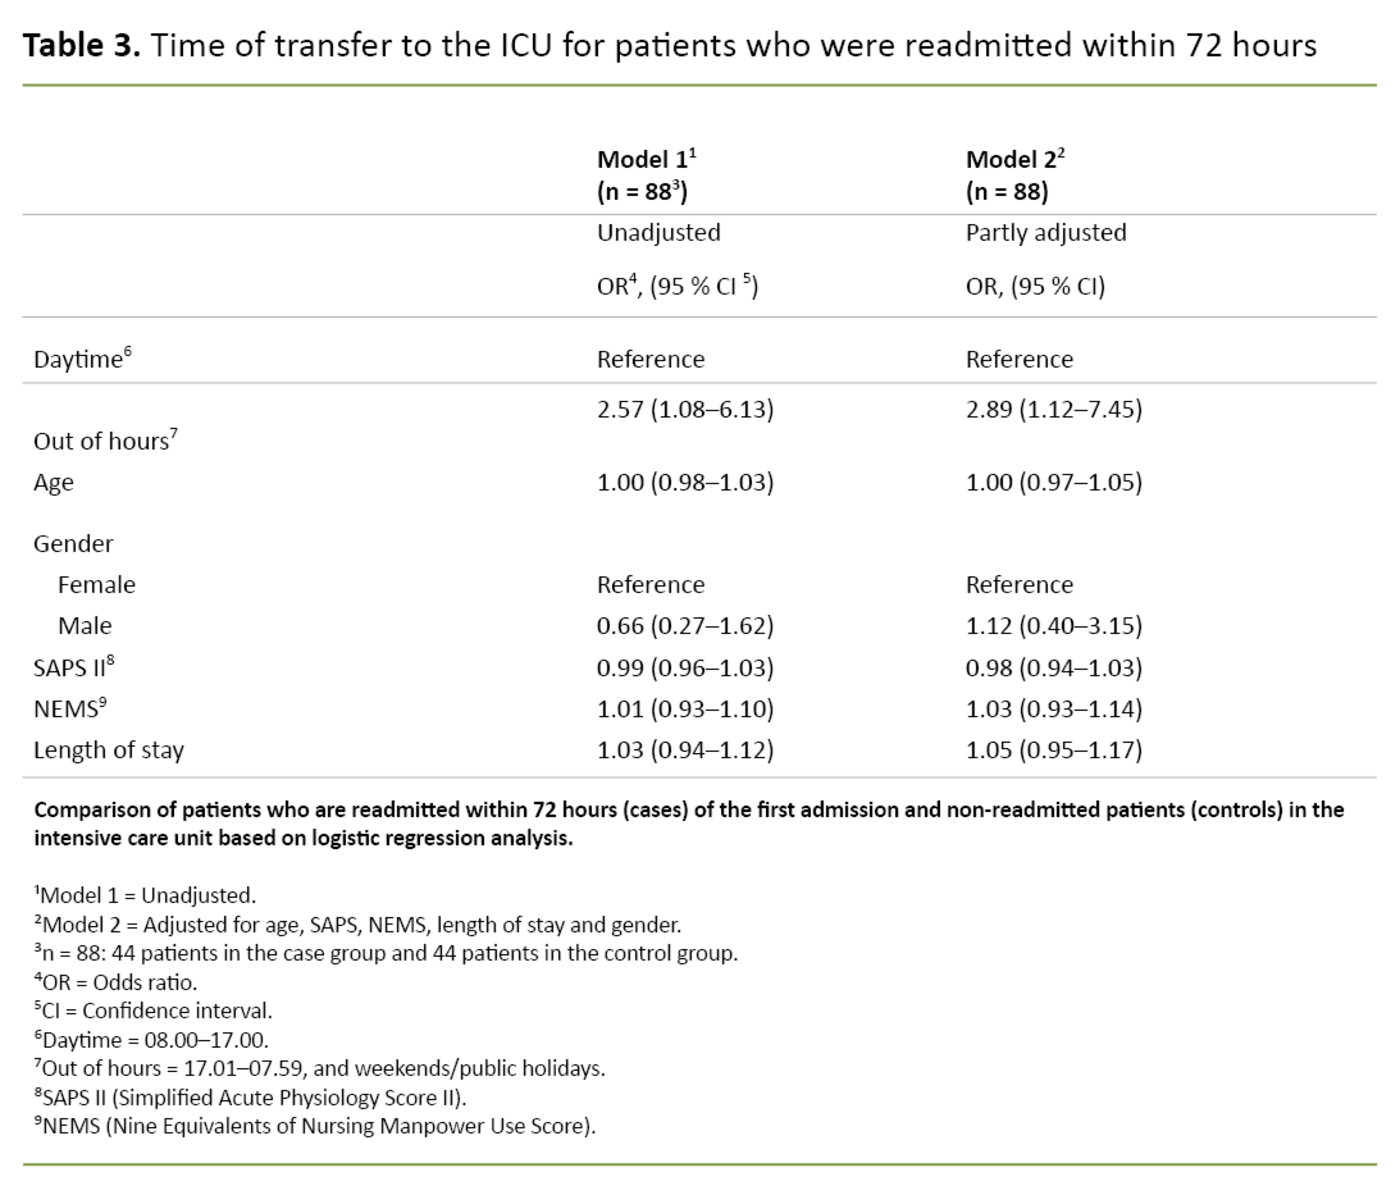 Table 3. Time of transfer to the ICU for patients who were readmitted within 72 hours